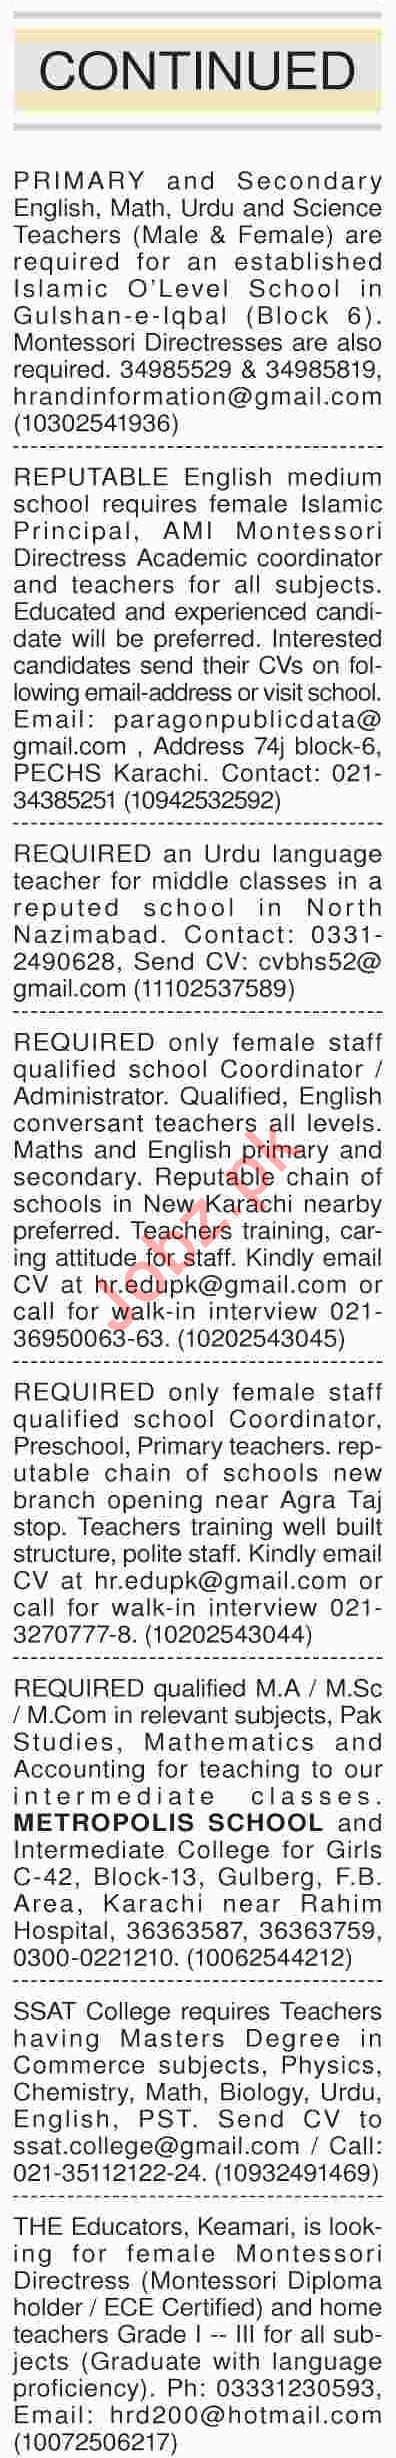 Dawn Sunday Classified Ads 14th April 2019 for Teachers